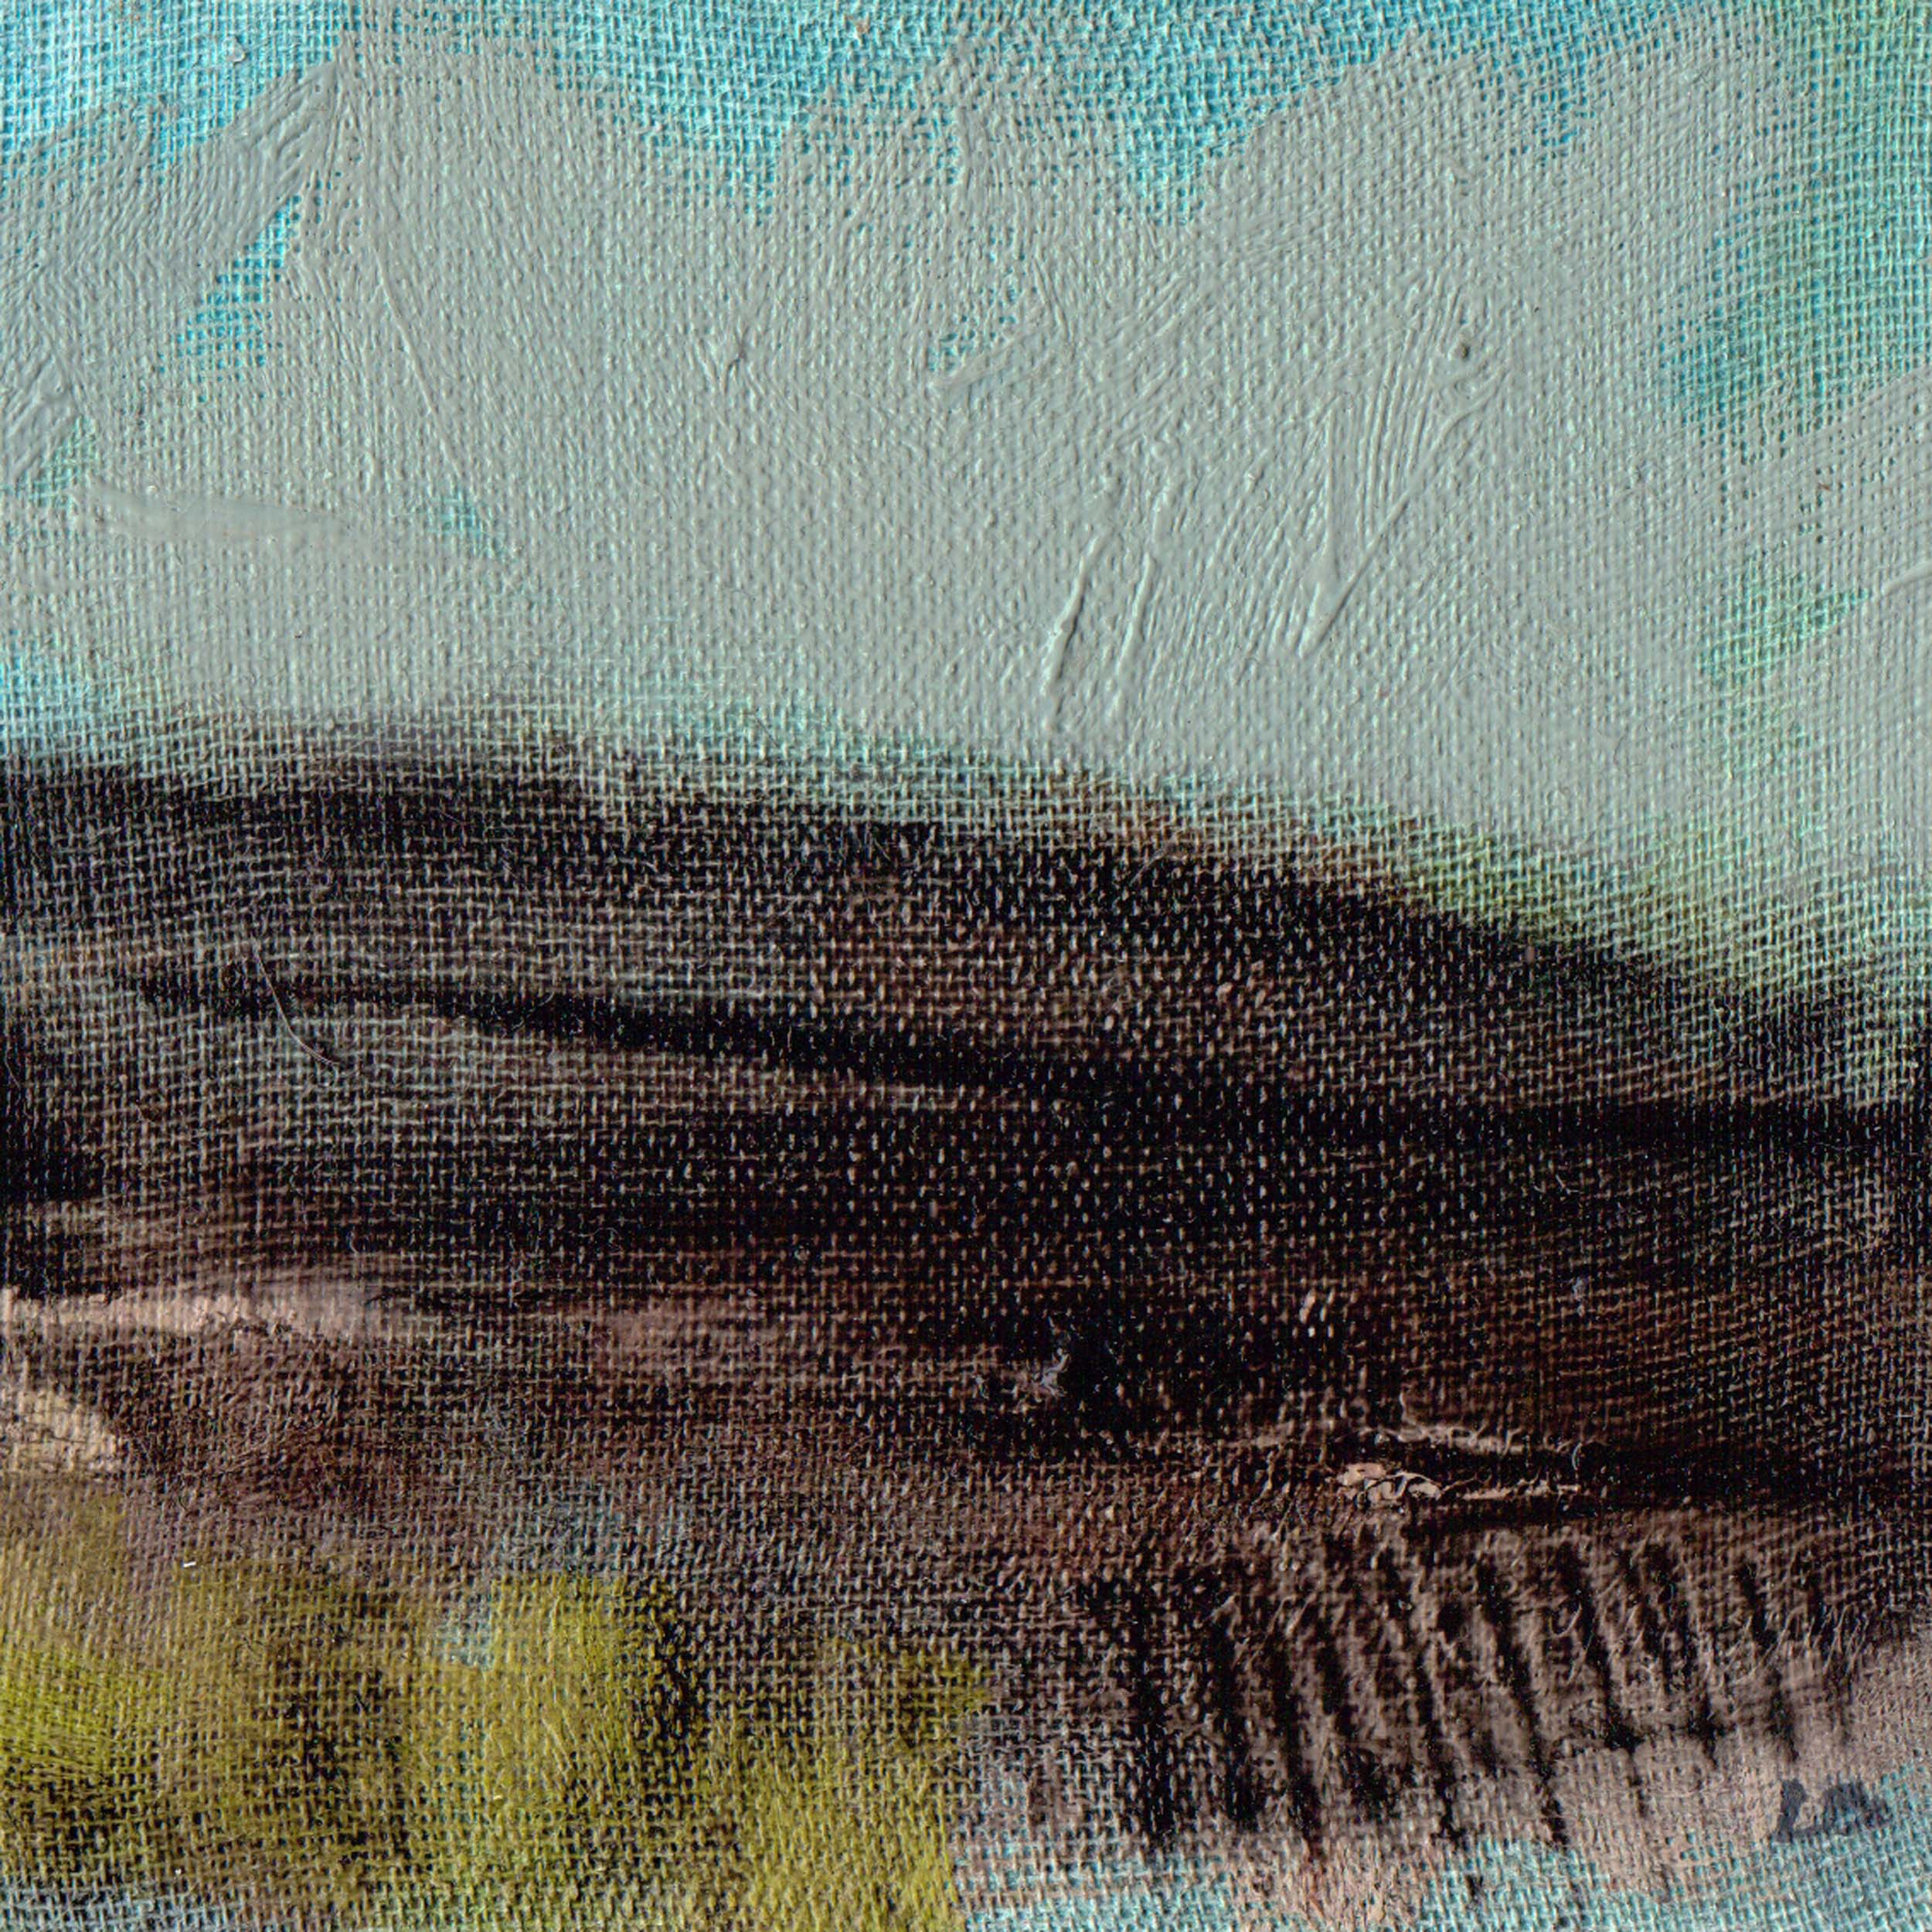 'BOG AND GORSE'